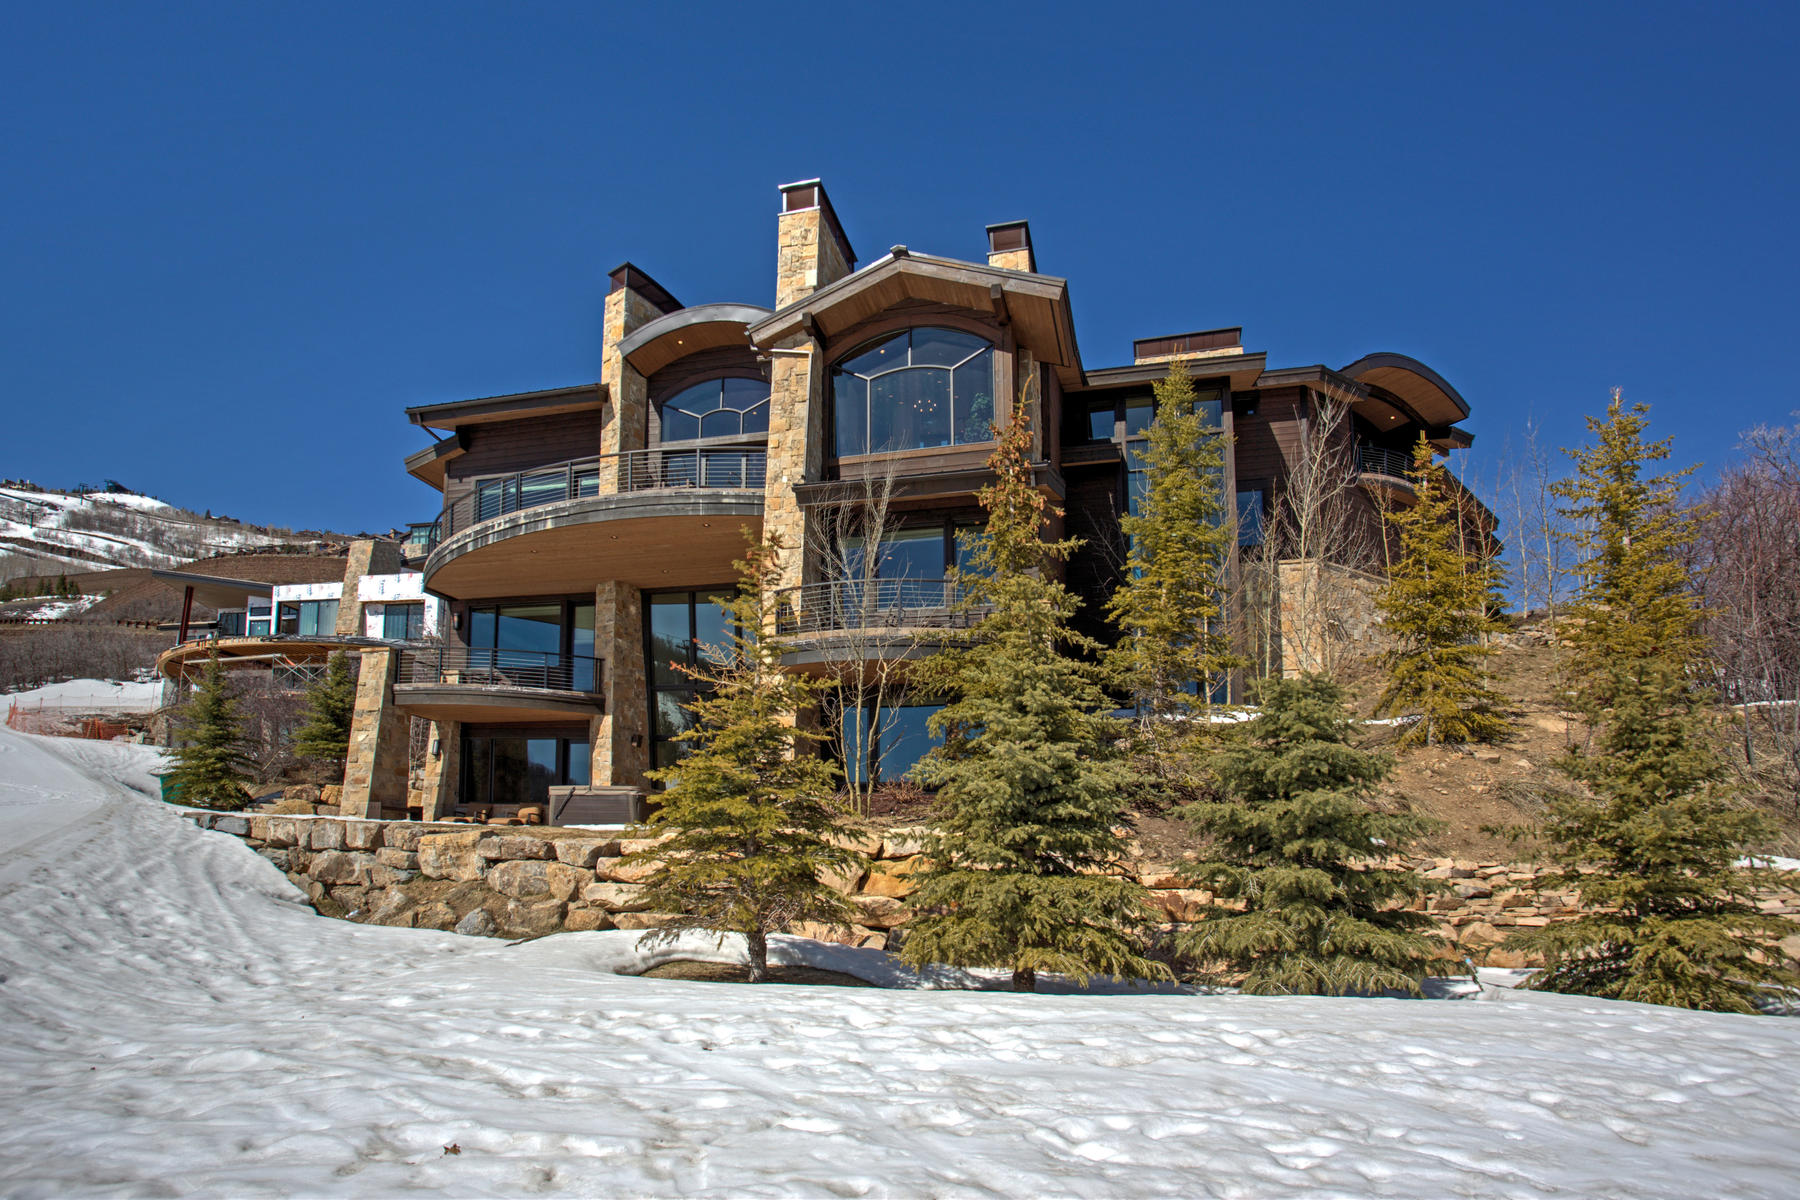 Single Family Home for Sale at Spectacular Turnkey Custom Home with Stunning Views protected by Open Space 2997 Deer Crest Estates Dr Park City, Utah, 84060 United States